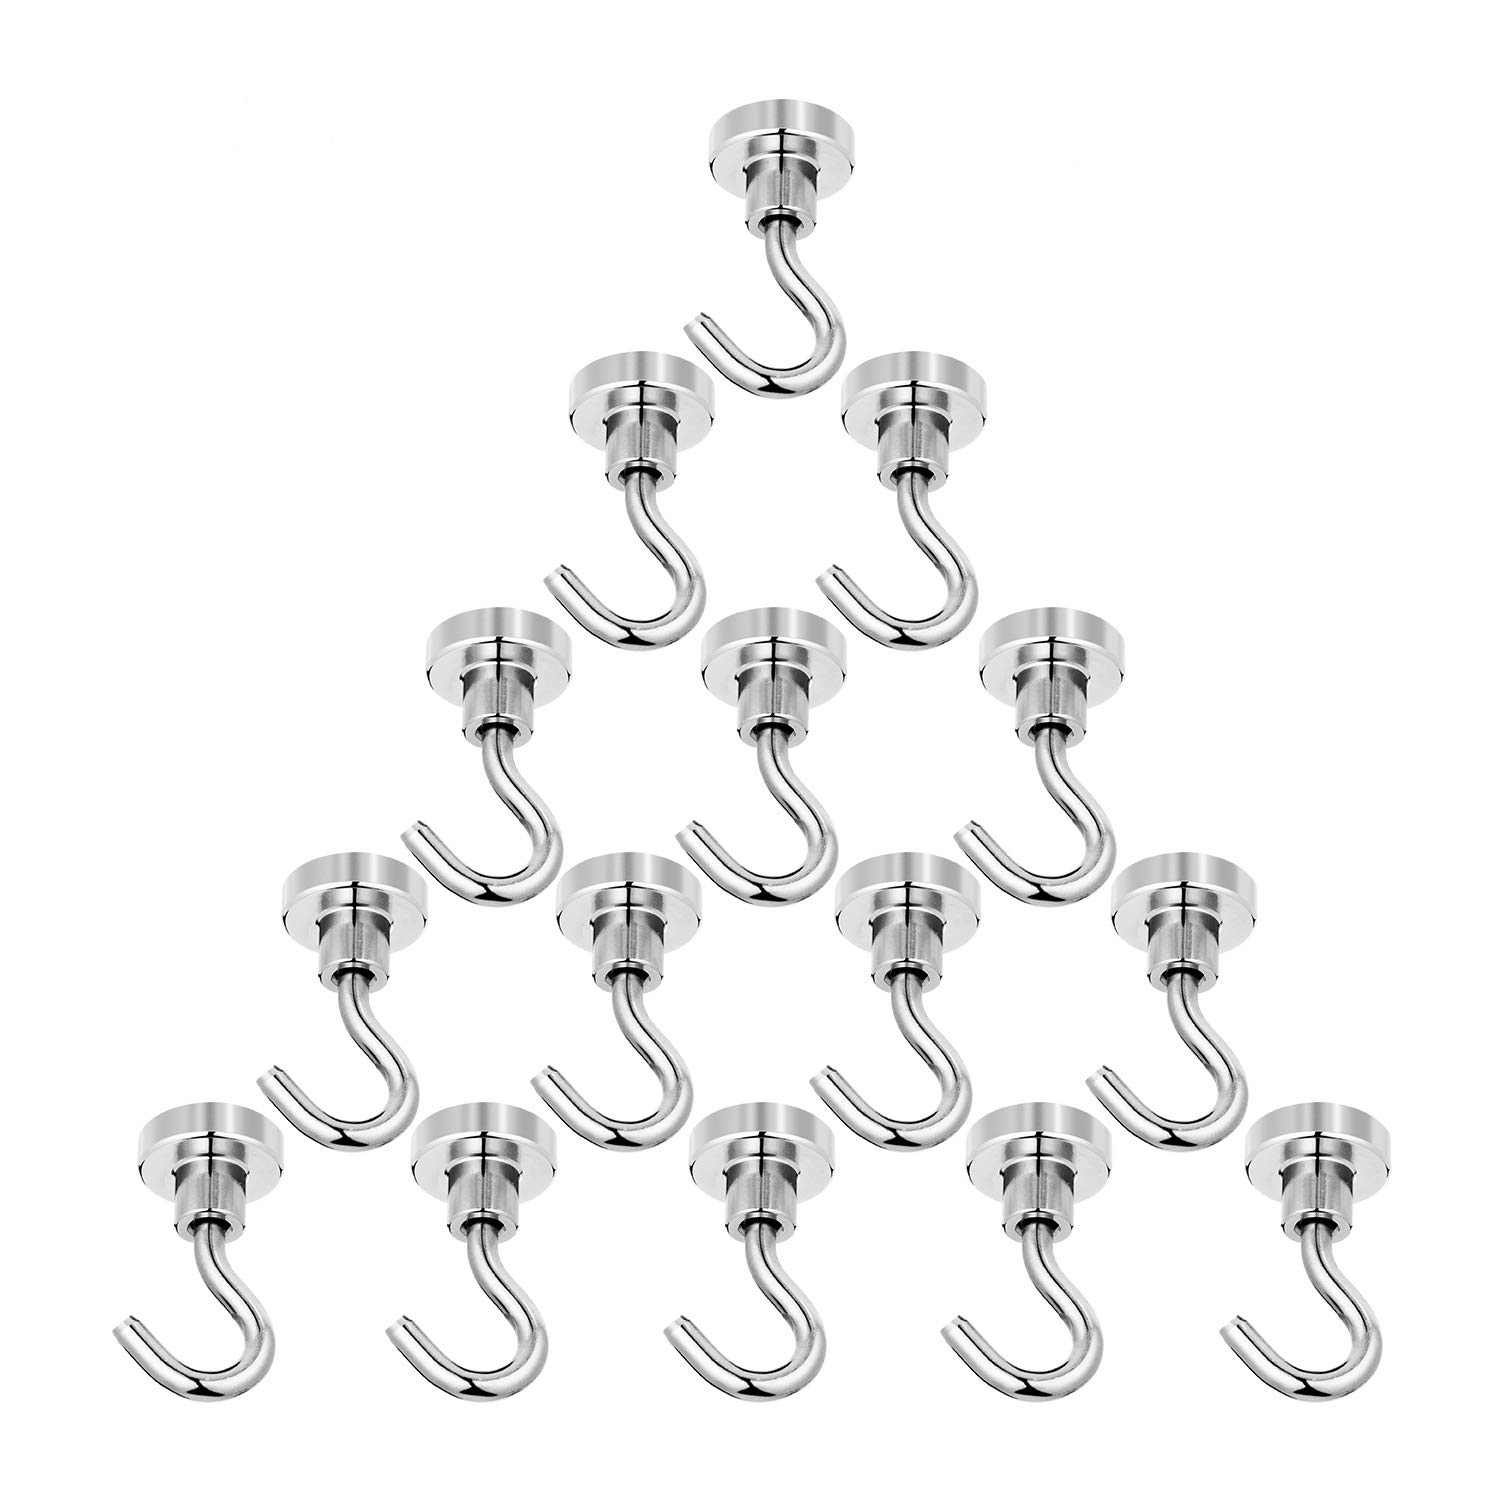 FUTU 24lb Magnetic Hooks,with 3 Layers' Nickel Strong Corrosion Protection,Ideal for Indoor/Outdoor Hanging(Silvery White,Pack of 15)